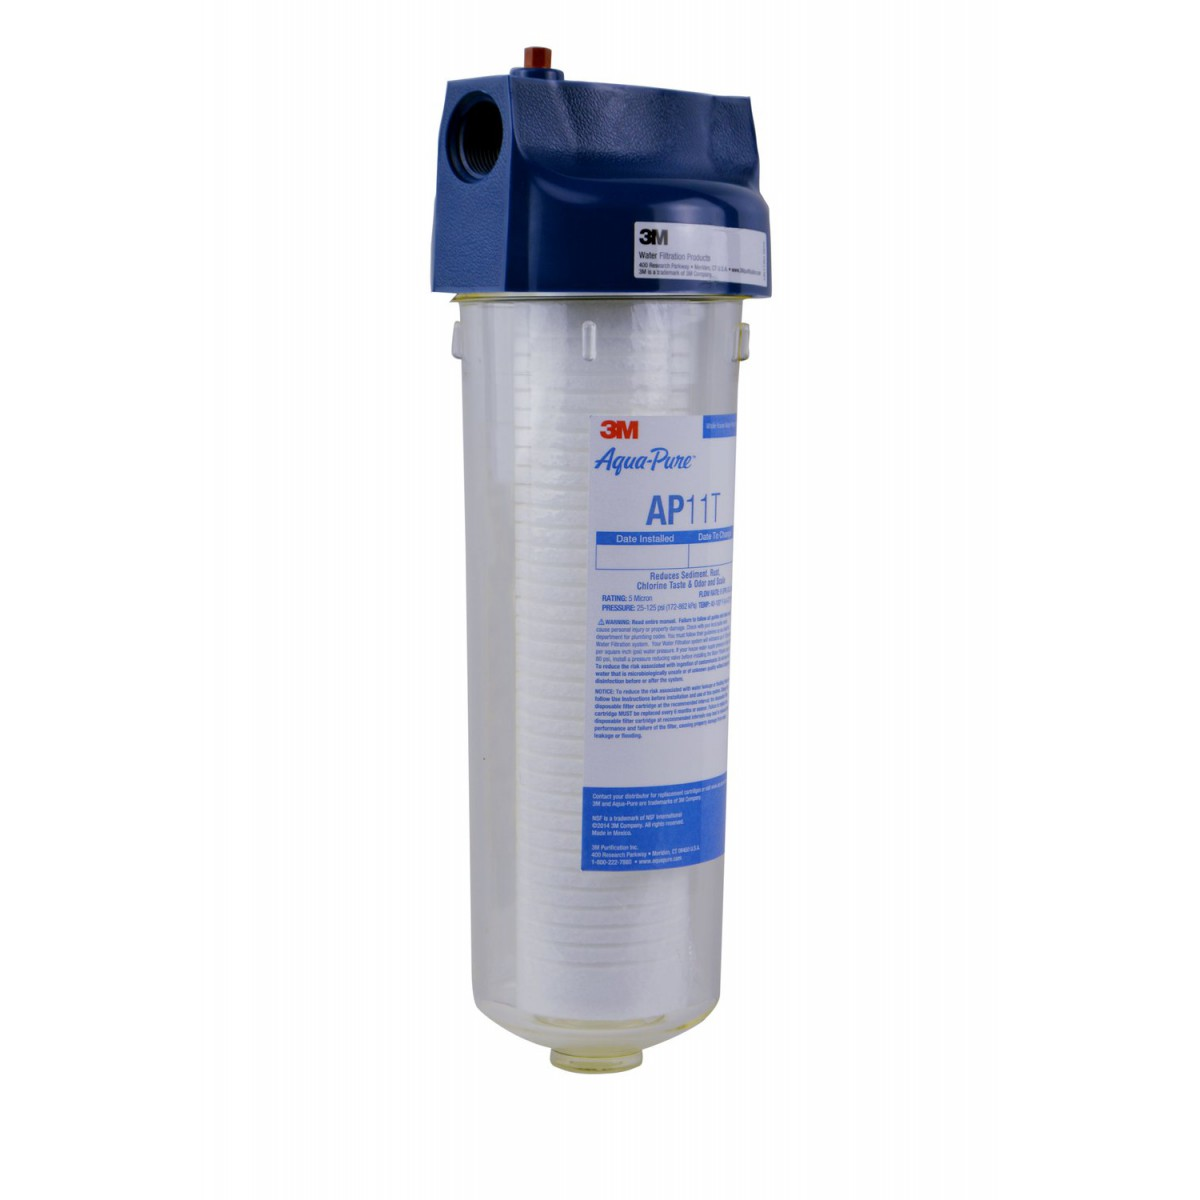 Supplier quality water filters in Wentzville, MO